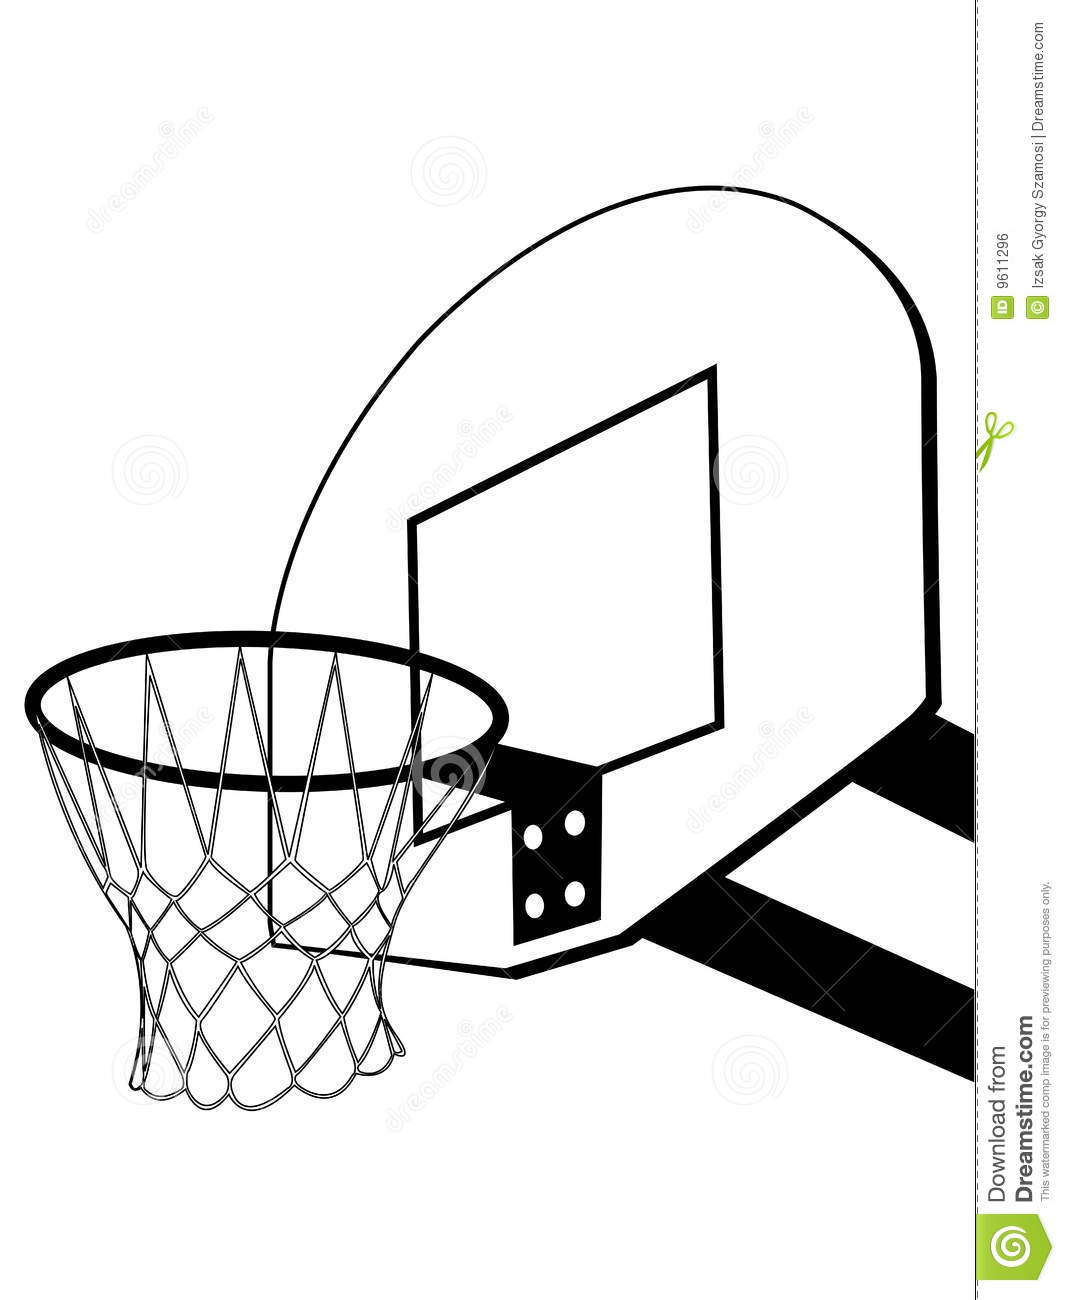 Basketball Clipart Simple Picture 259960 Basketball Clipart Simple